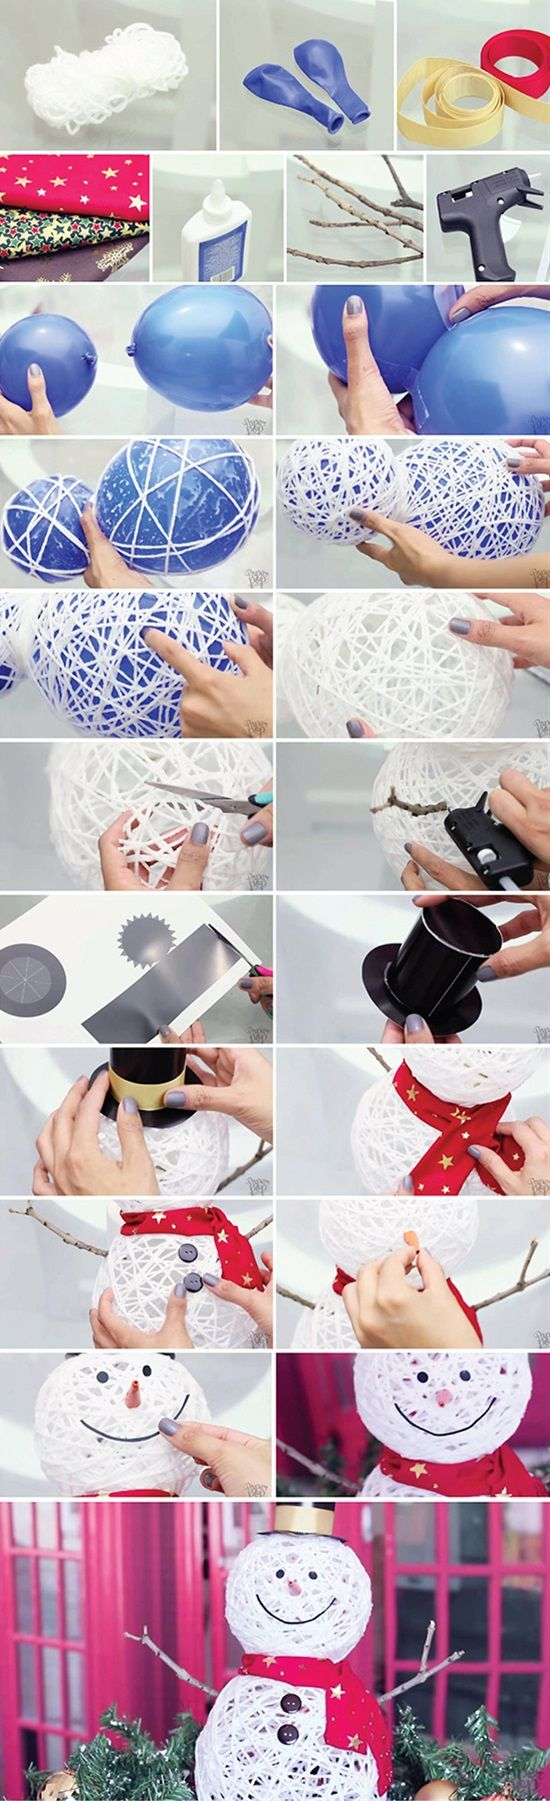 19 DIY Crafts To Decorate Your Home For Christmas